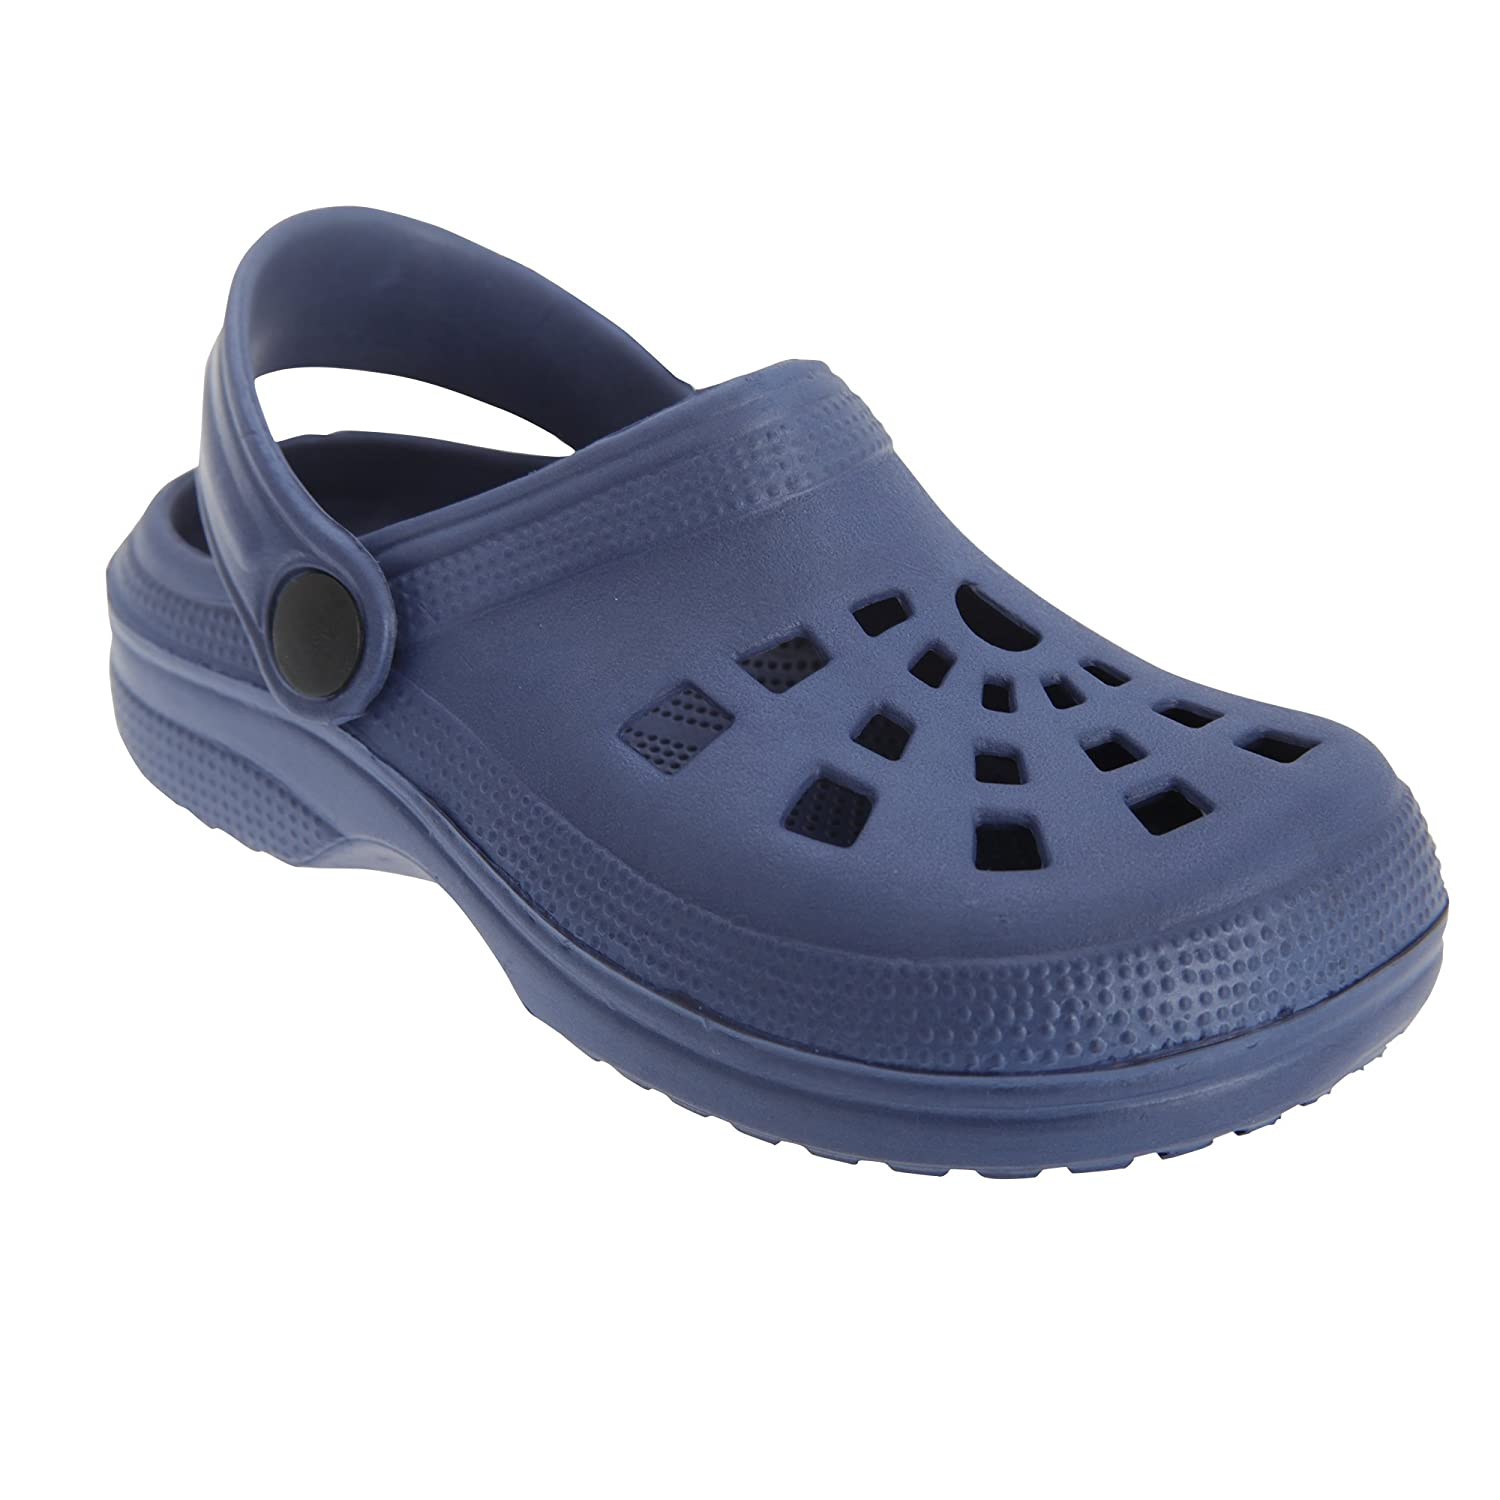 Universal Textiles Childrens/Kids Navy Summer Clog Sandals